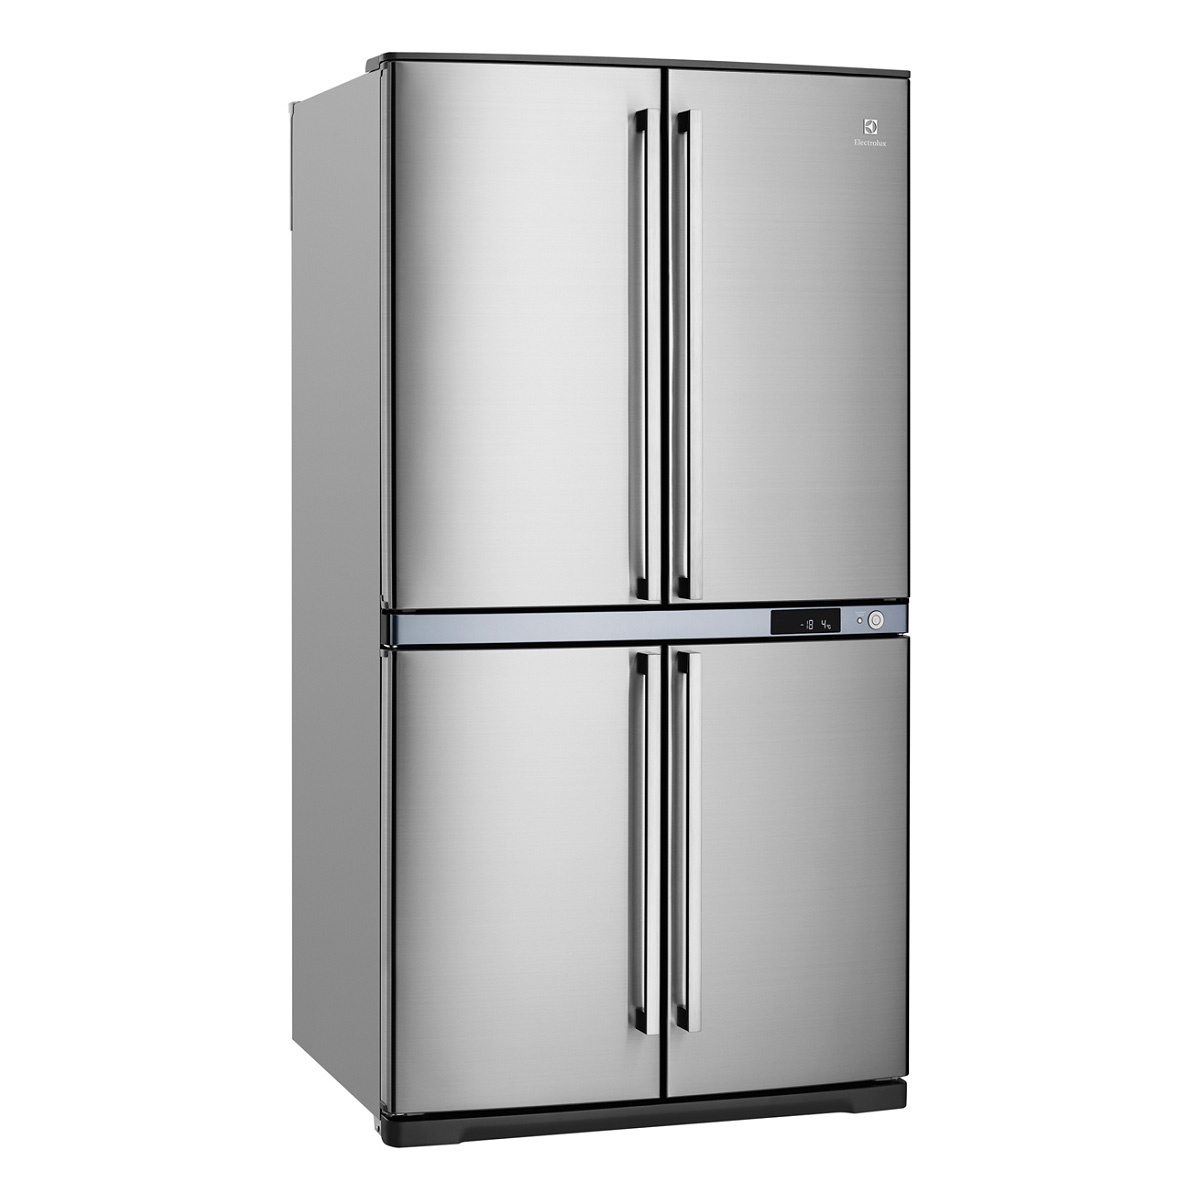 GF-B620SL - 620L French Door Refrigerator with Auto Ice ...